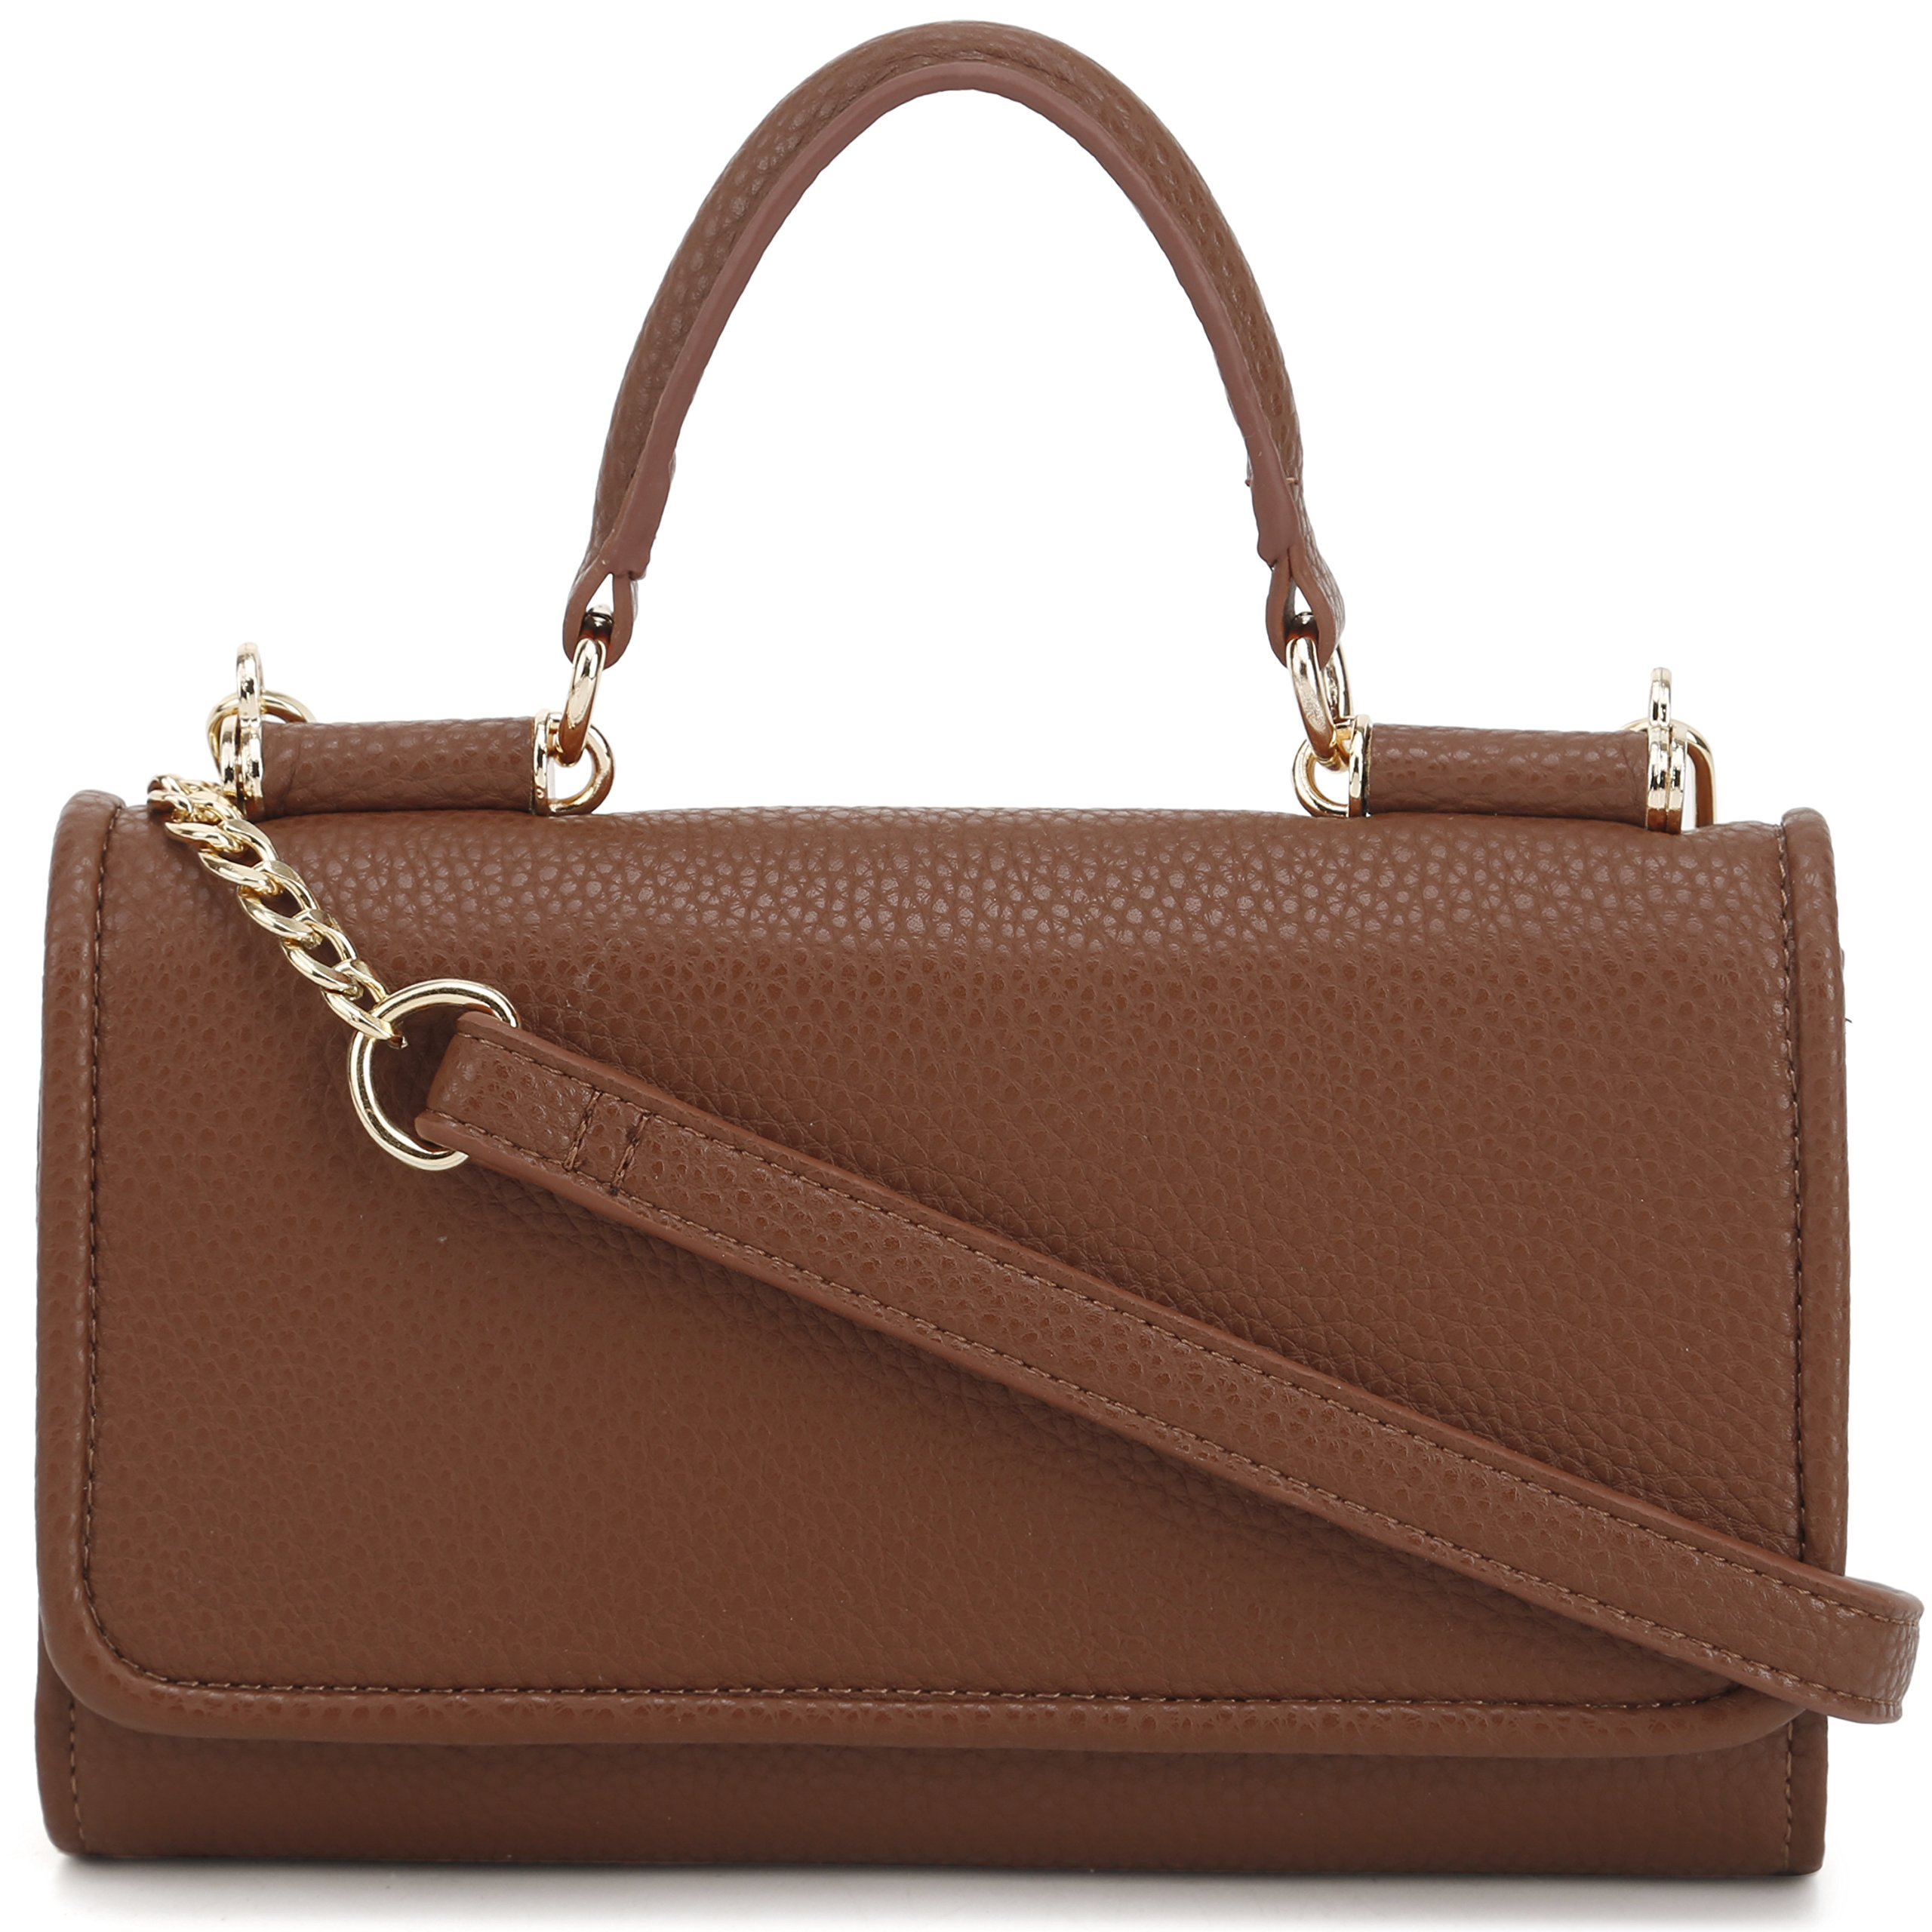 DELUXITY Top Handle Clutch Crossbody Purse with Removable Chain Strap (Brown)